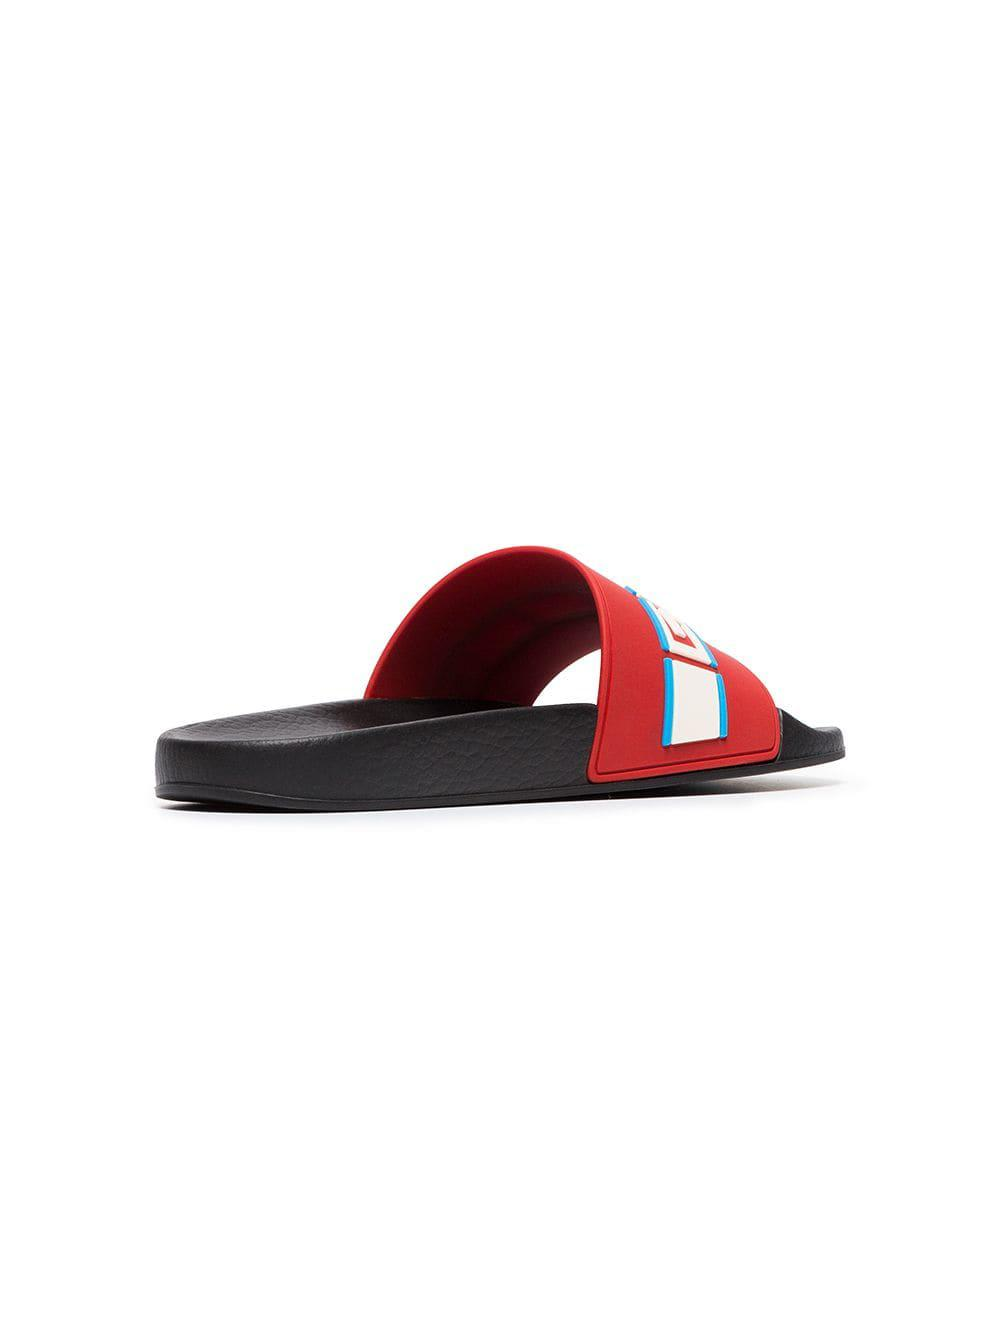 d0a7263033dd03 Gucci - Blue Poppy Azure Red Pursuit Sandals - Lyst. View fullscreen